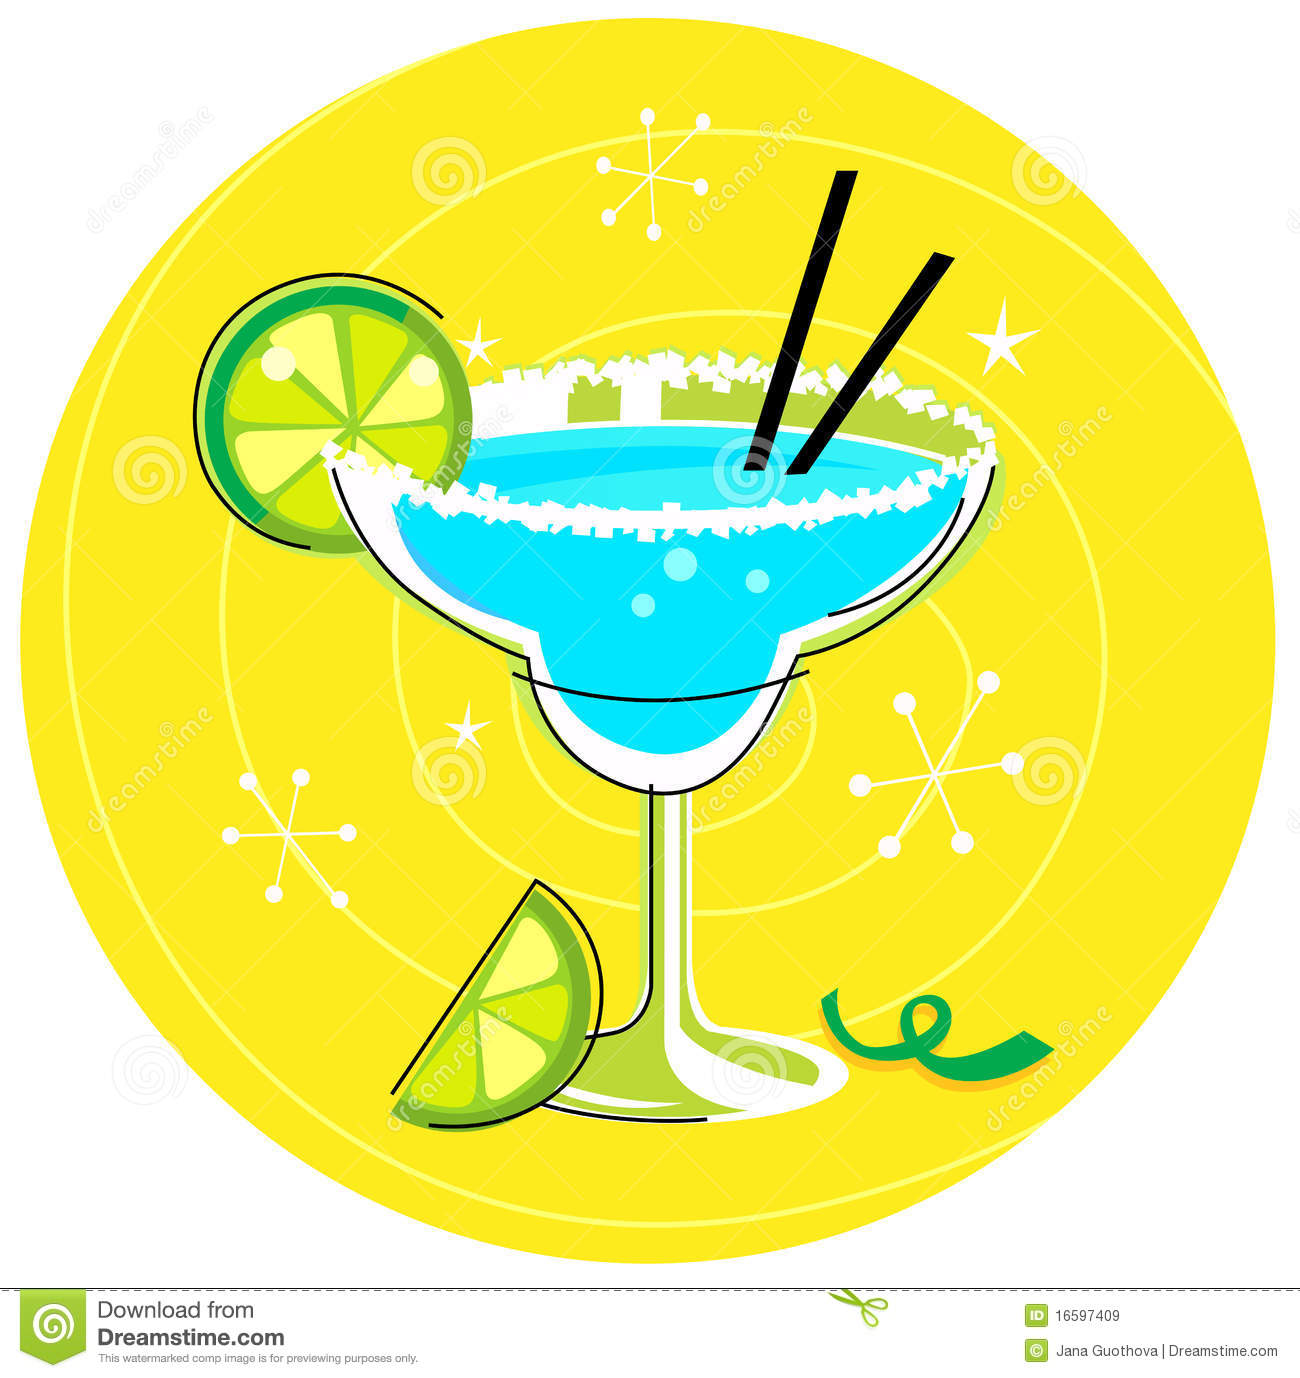 Blue Margarita Retro Cocktail Icon Royalty Free Stock